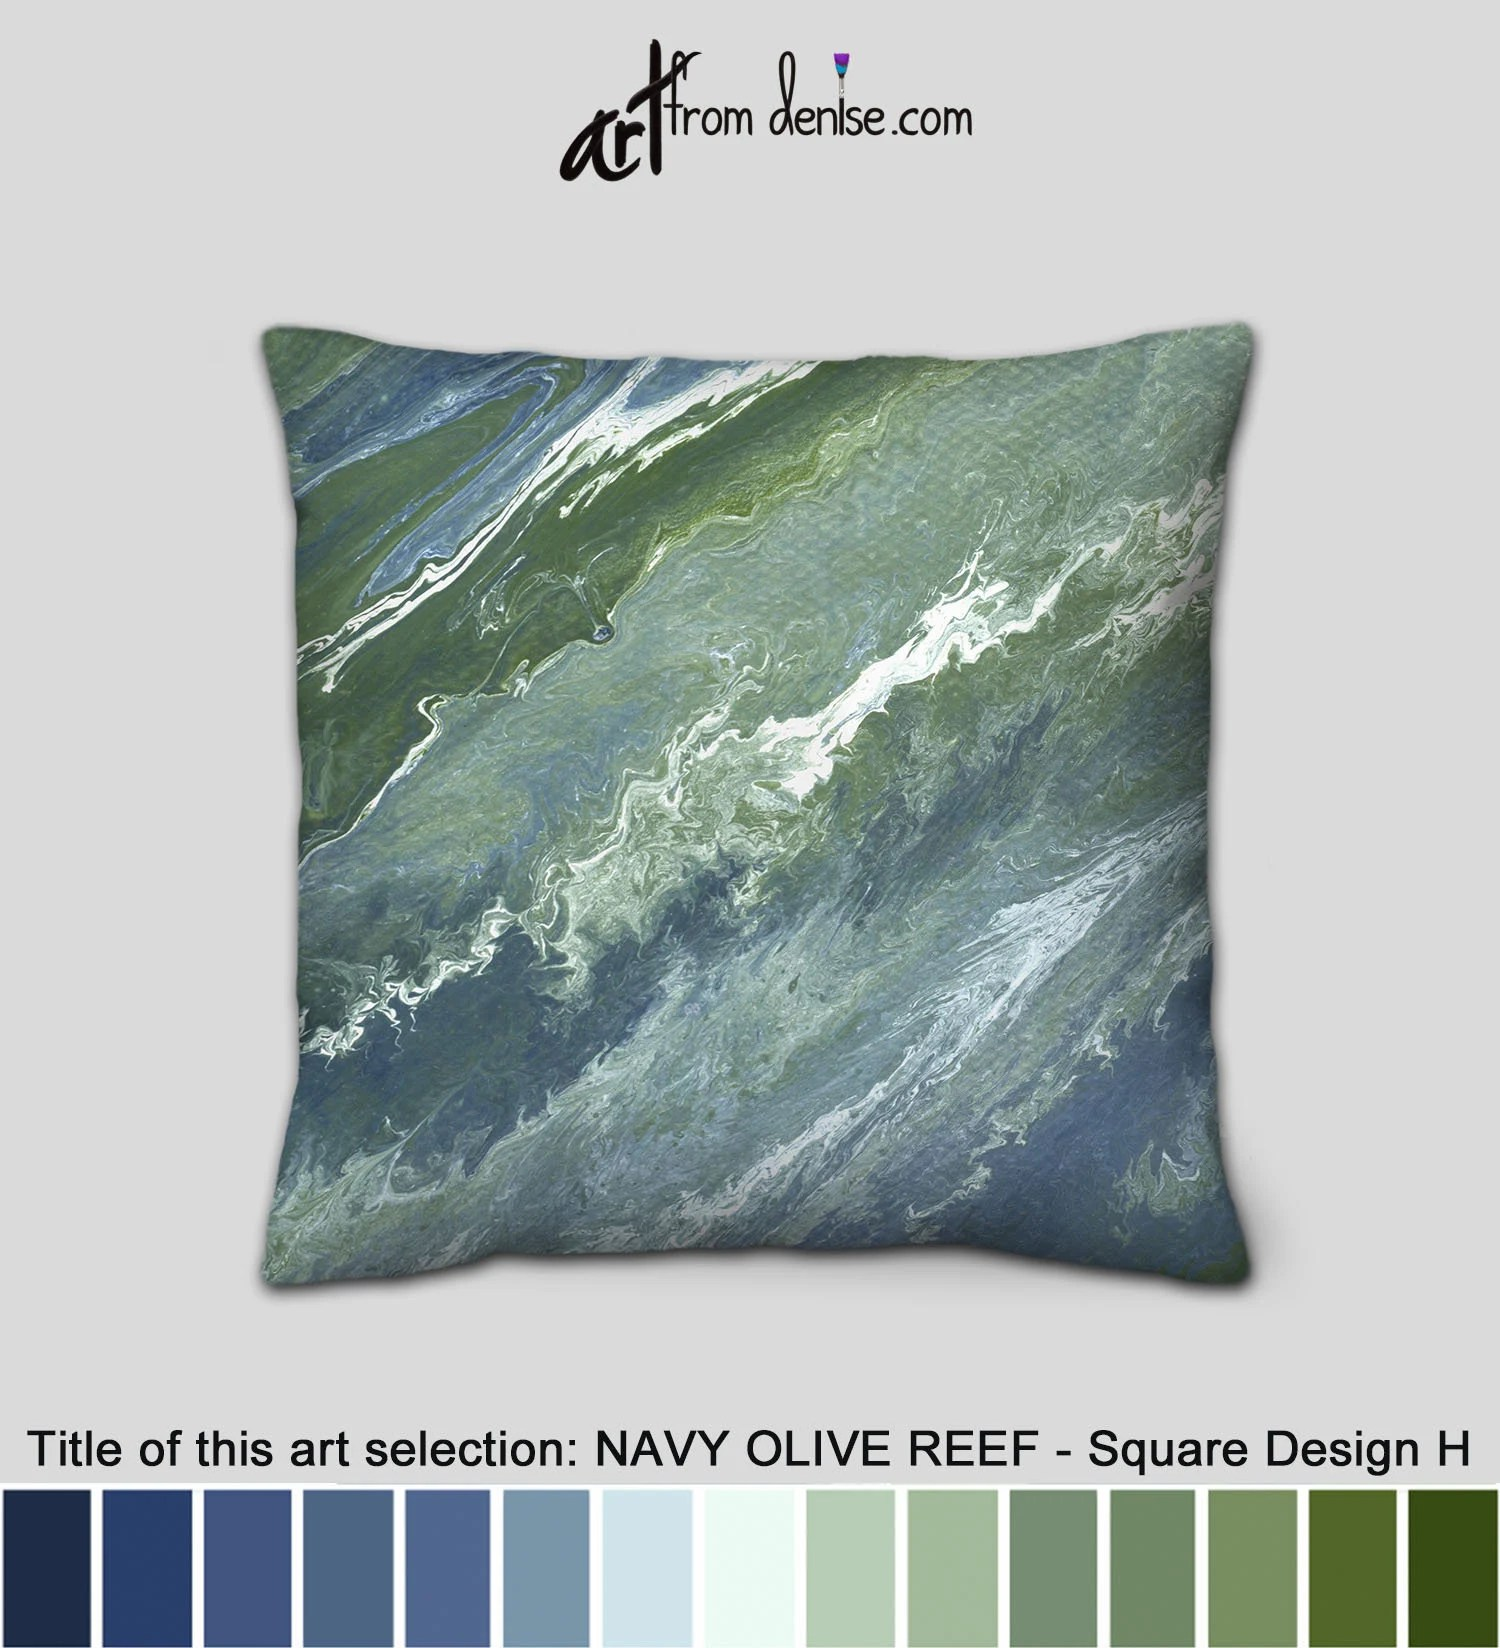 sage green and navy blue throw pillows for bed decor large couch pillows set decorative sofa cushion covers or outdoor pillows